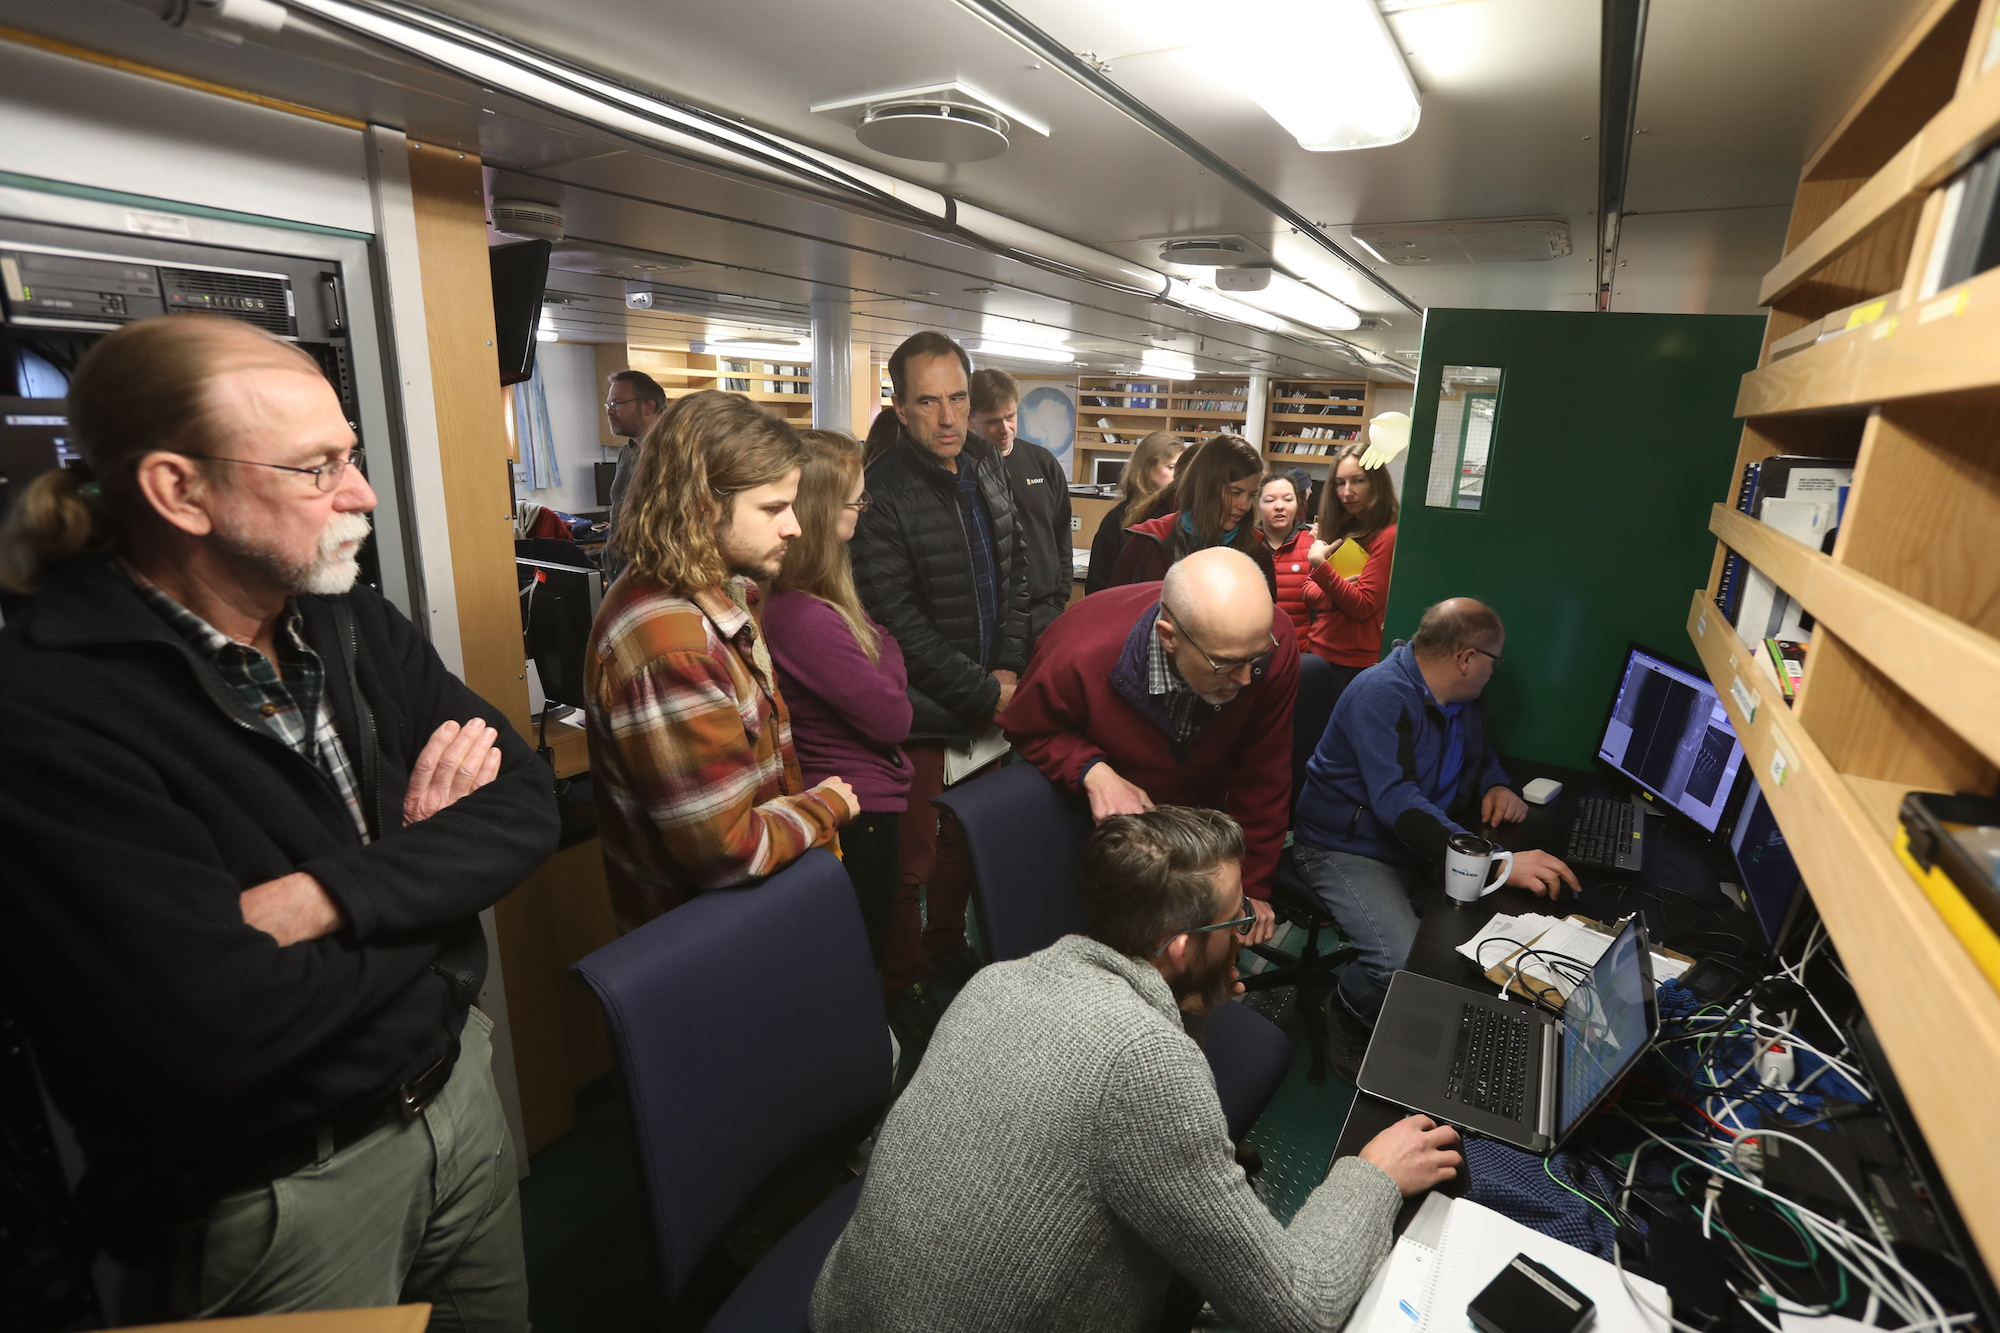 The E-lab is the nerve center and office space for all the science teams. Everyone in the E-lab looking excitedly at the Hugin AUV (see blog…) high resolution side-looking sonar of the seafloor surface in front of the Thwaites ice shelf.